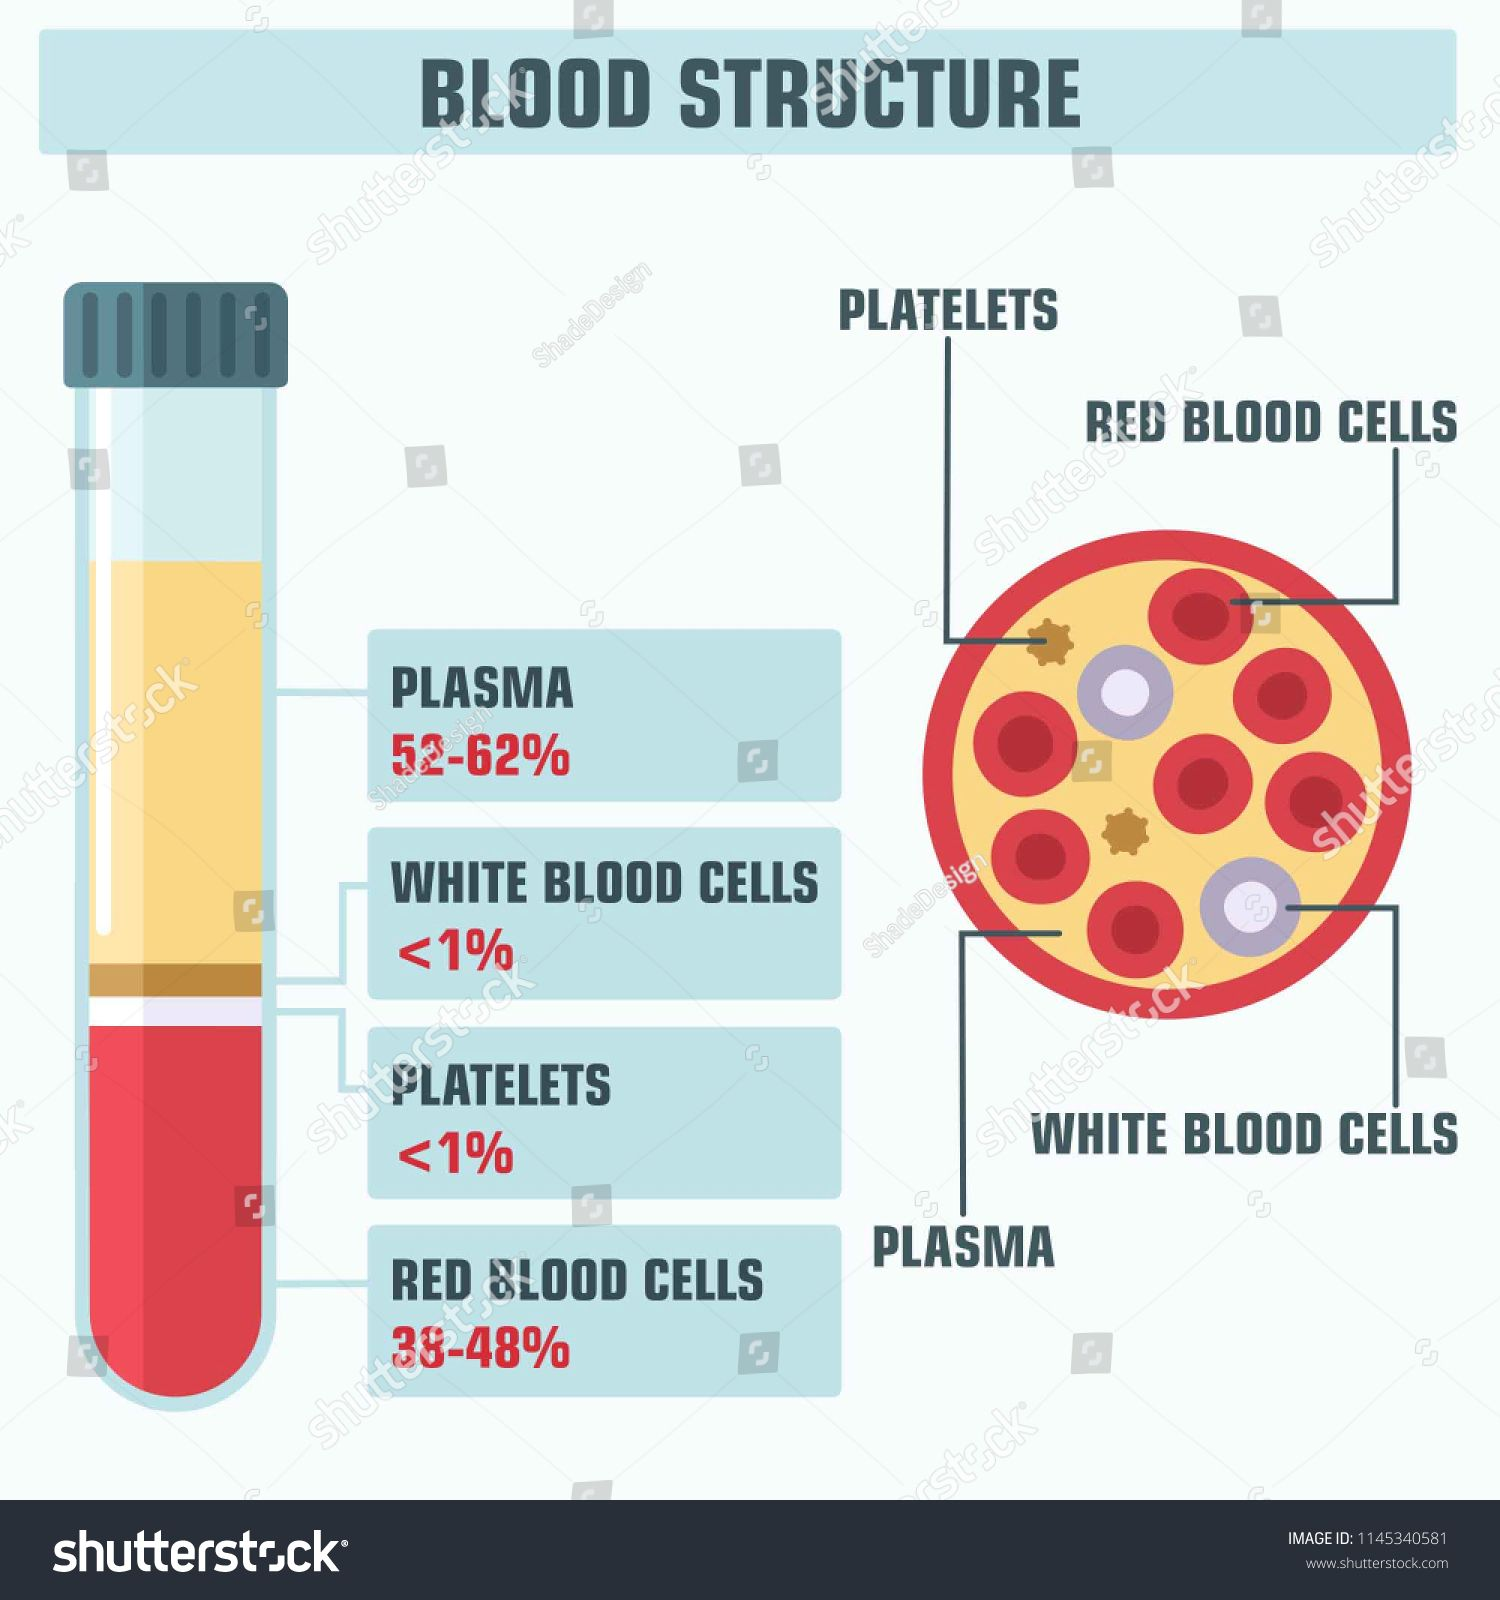 Components Of Blood Worksheet Answers